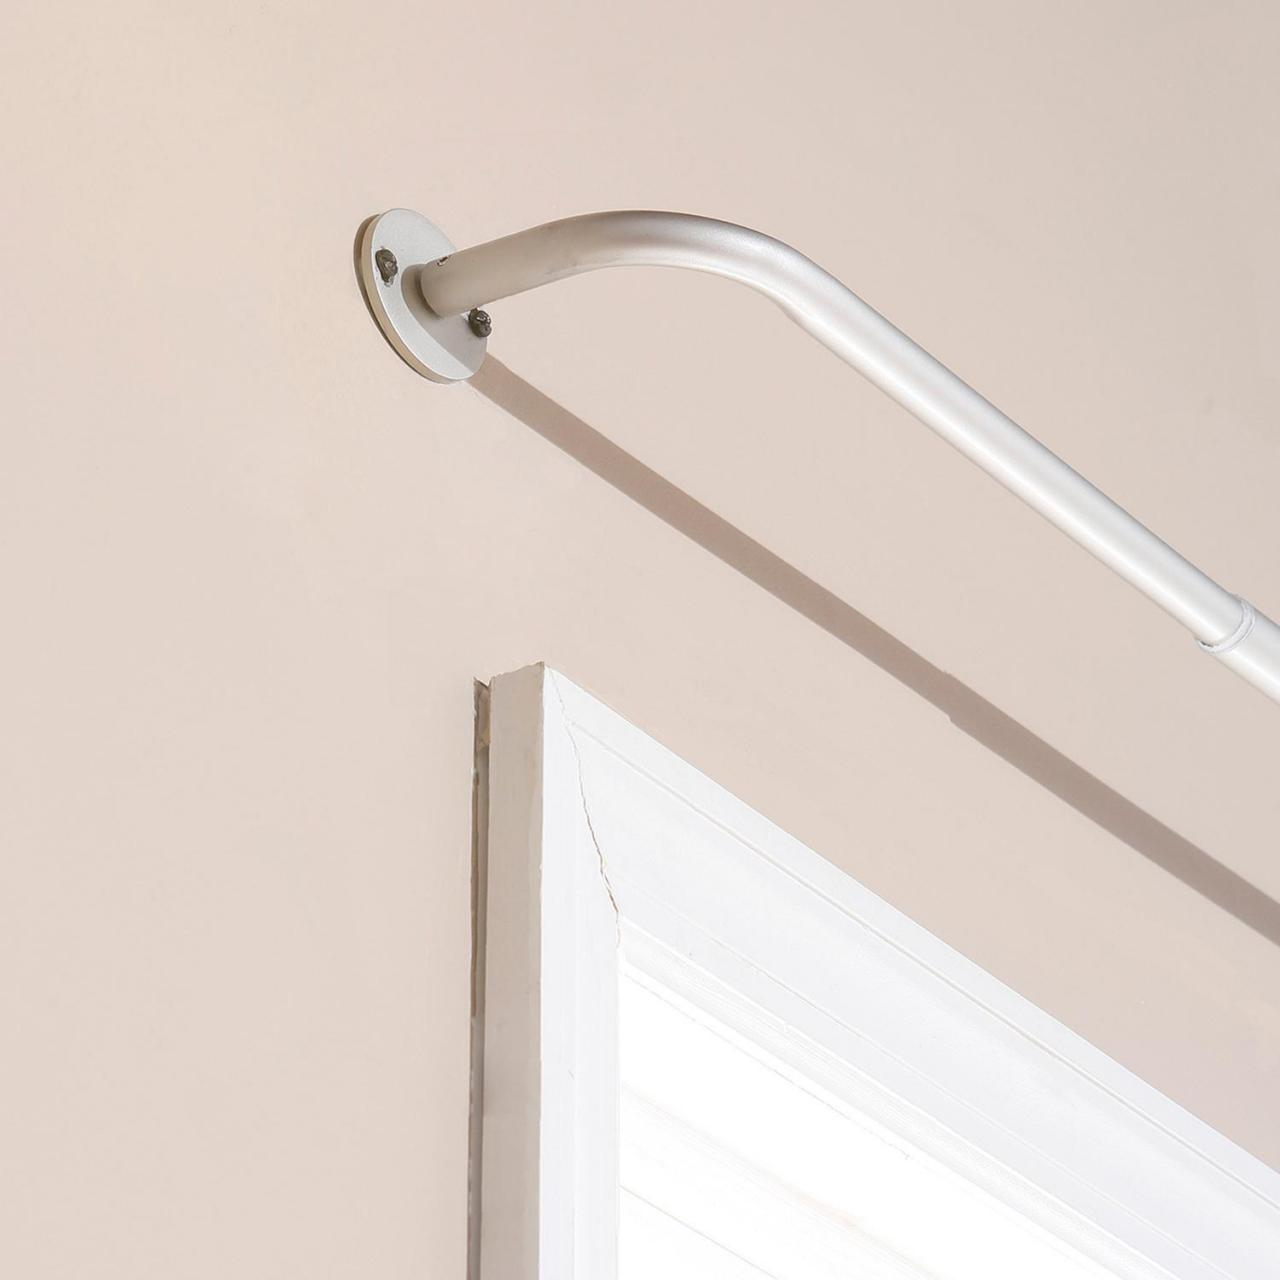 Quality welded curtain rod, powder coated wholesale